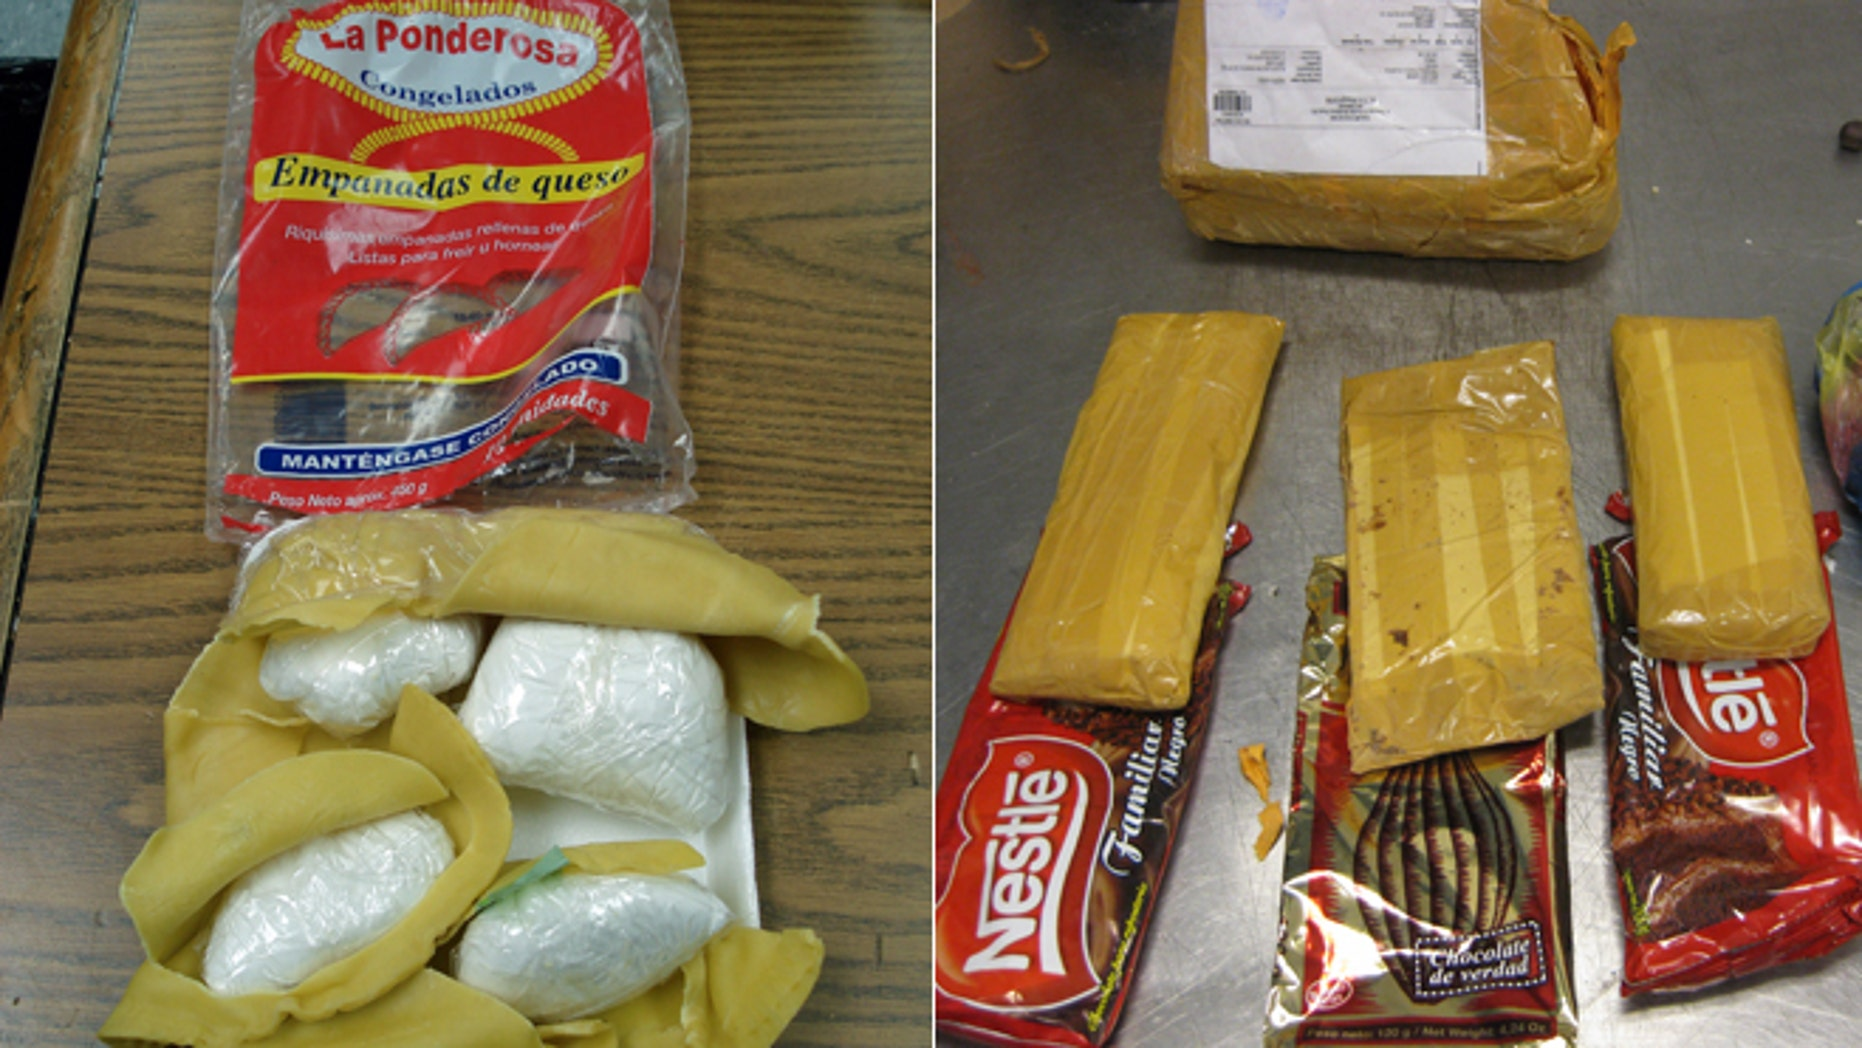 This undated photo provided by the Office of the Special Narcotics Prosecutor (SNP) for New York City shows cocaine disguised in empanadas, and heroin, in  yellow packages, that was disguised in packages of candy.